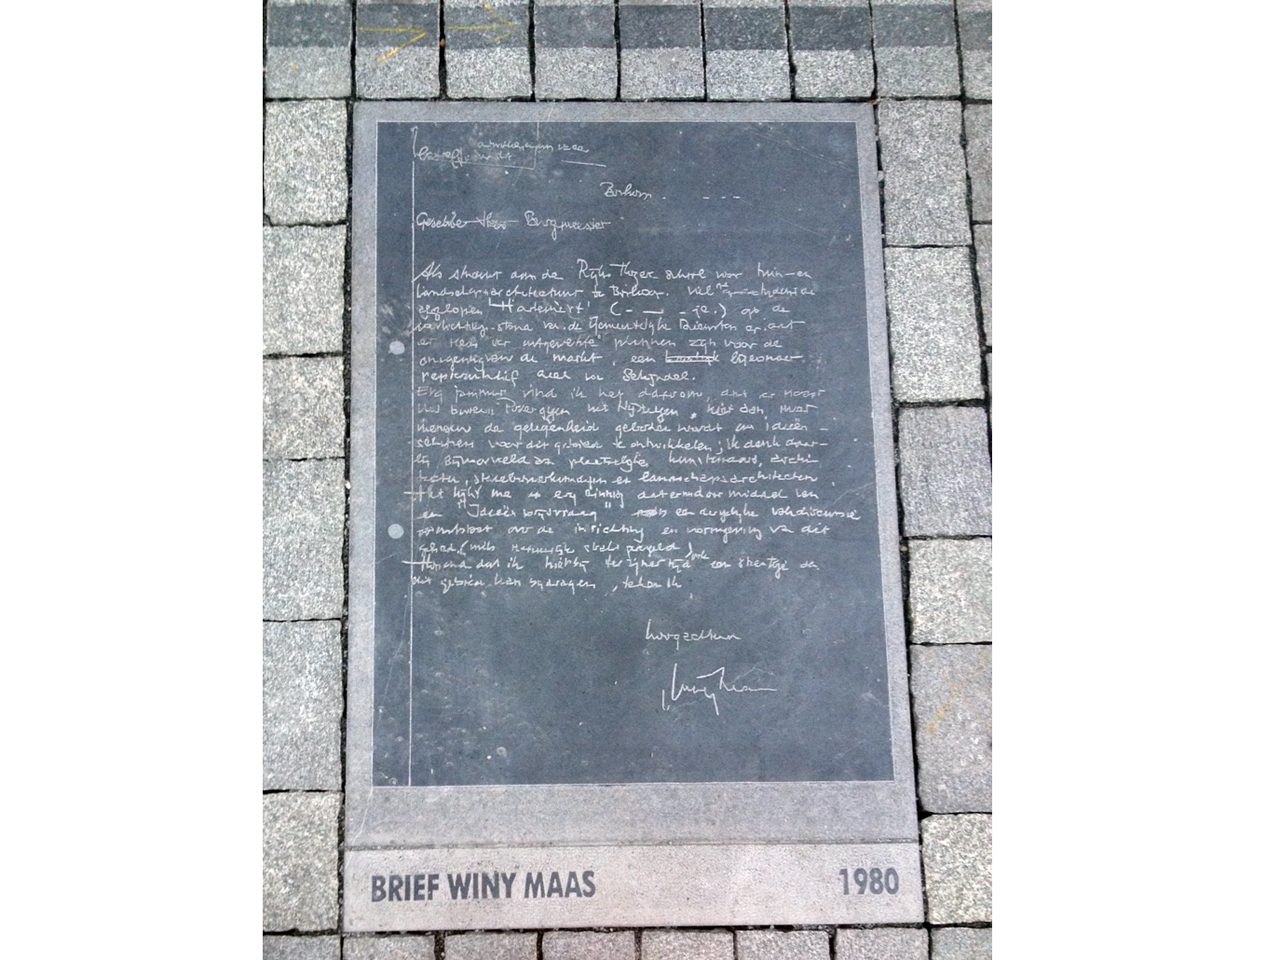 Letter written by Winy Maas as a student gets set in stone in Schijndel